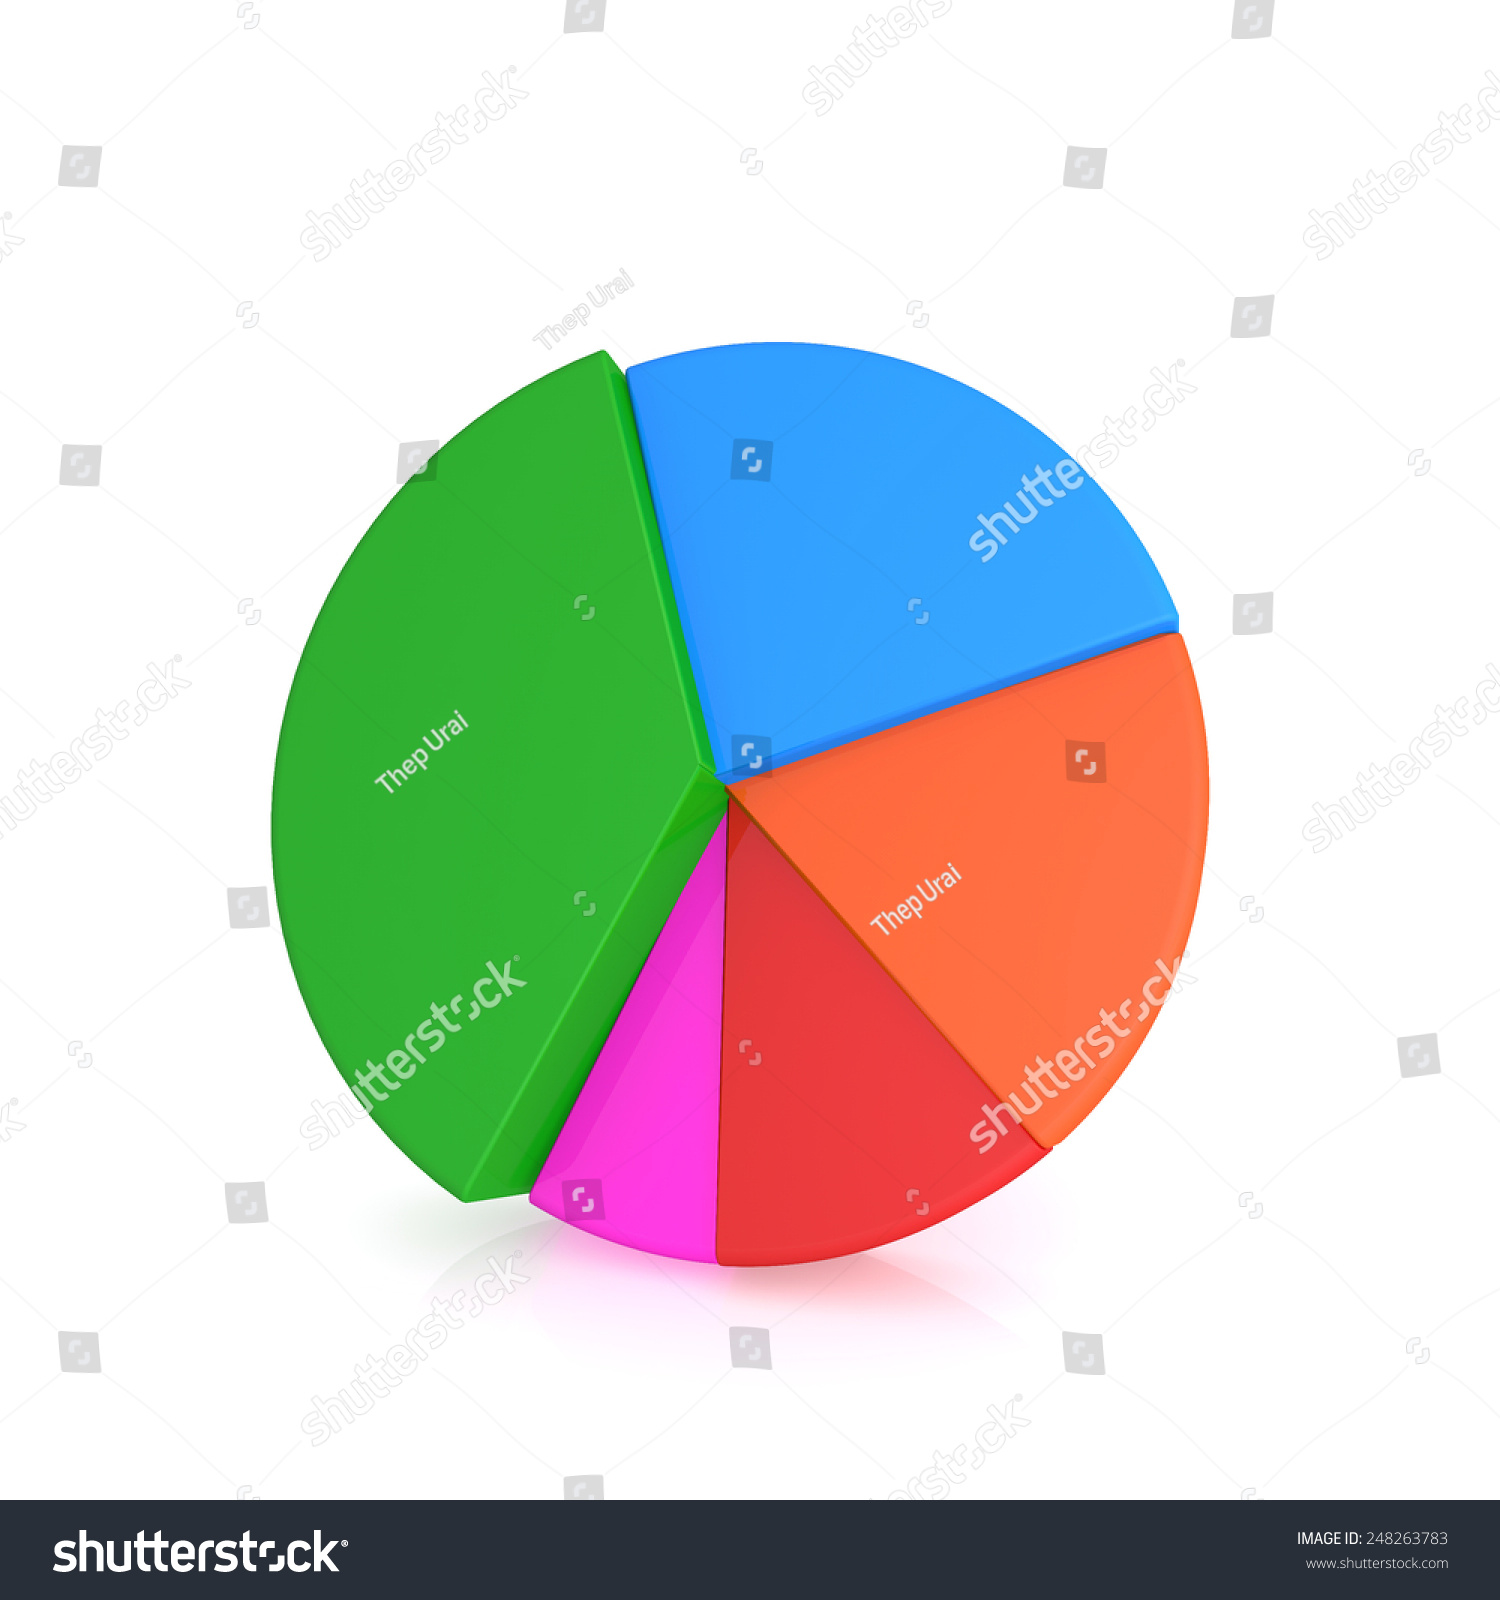 Colorful 3 D Pie Chart Graph Stock Illustration 248263783 Shutterstock